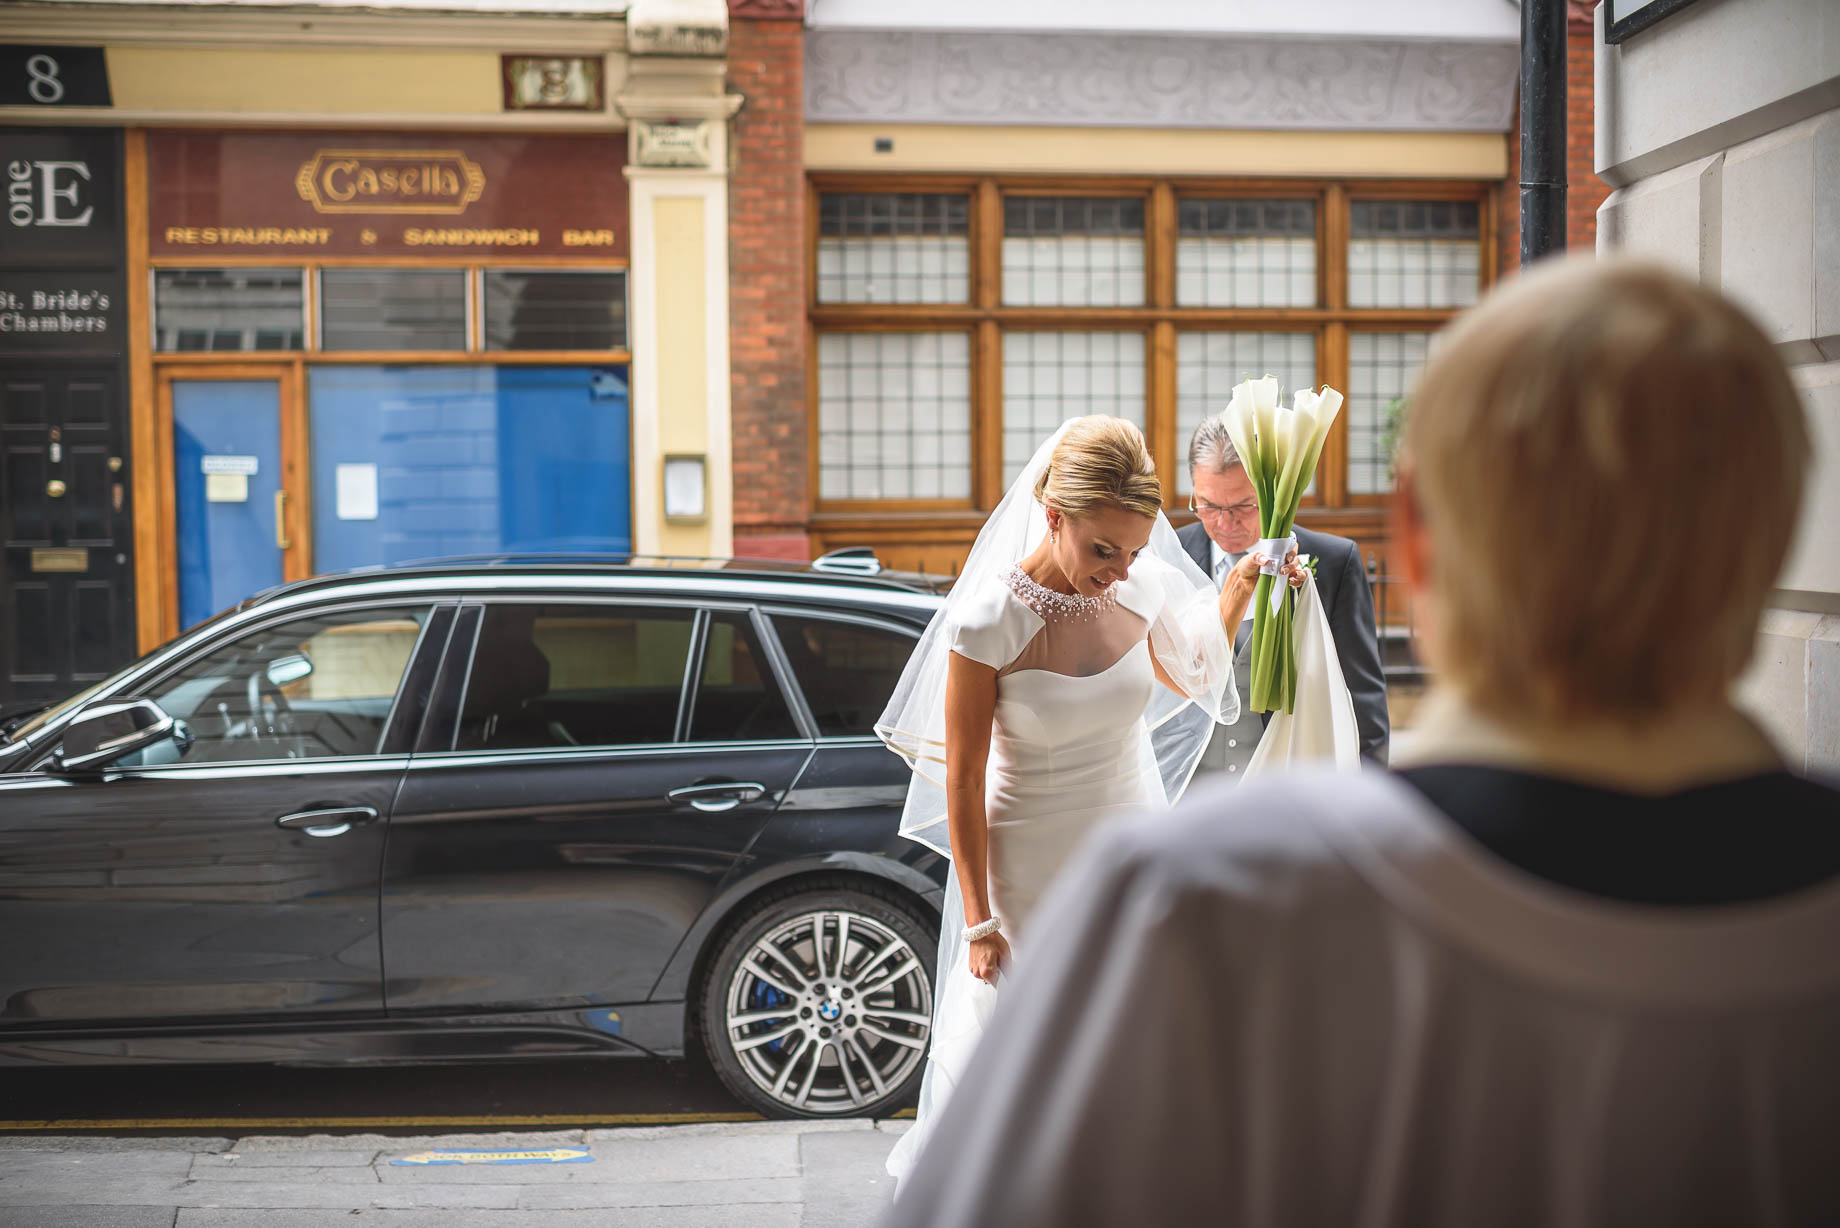 Shoreditch wedding photography - Guy Collier - Kat and Henry (65 of 200)